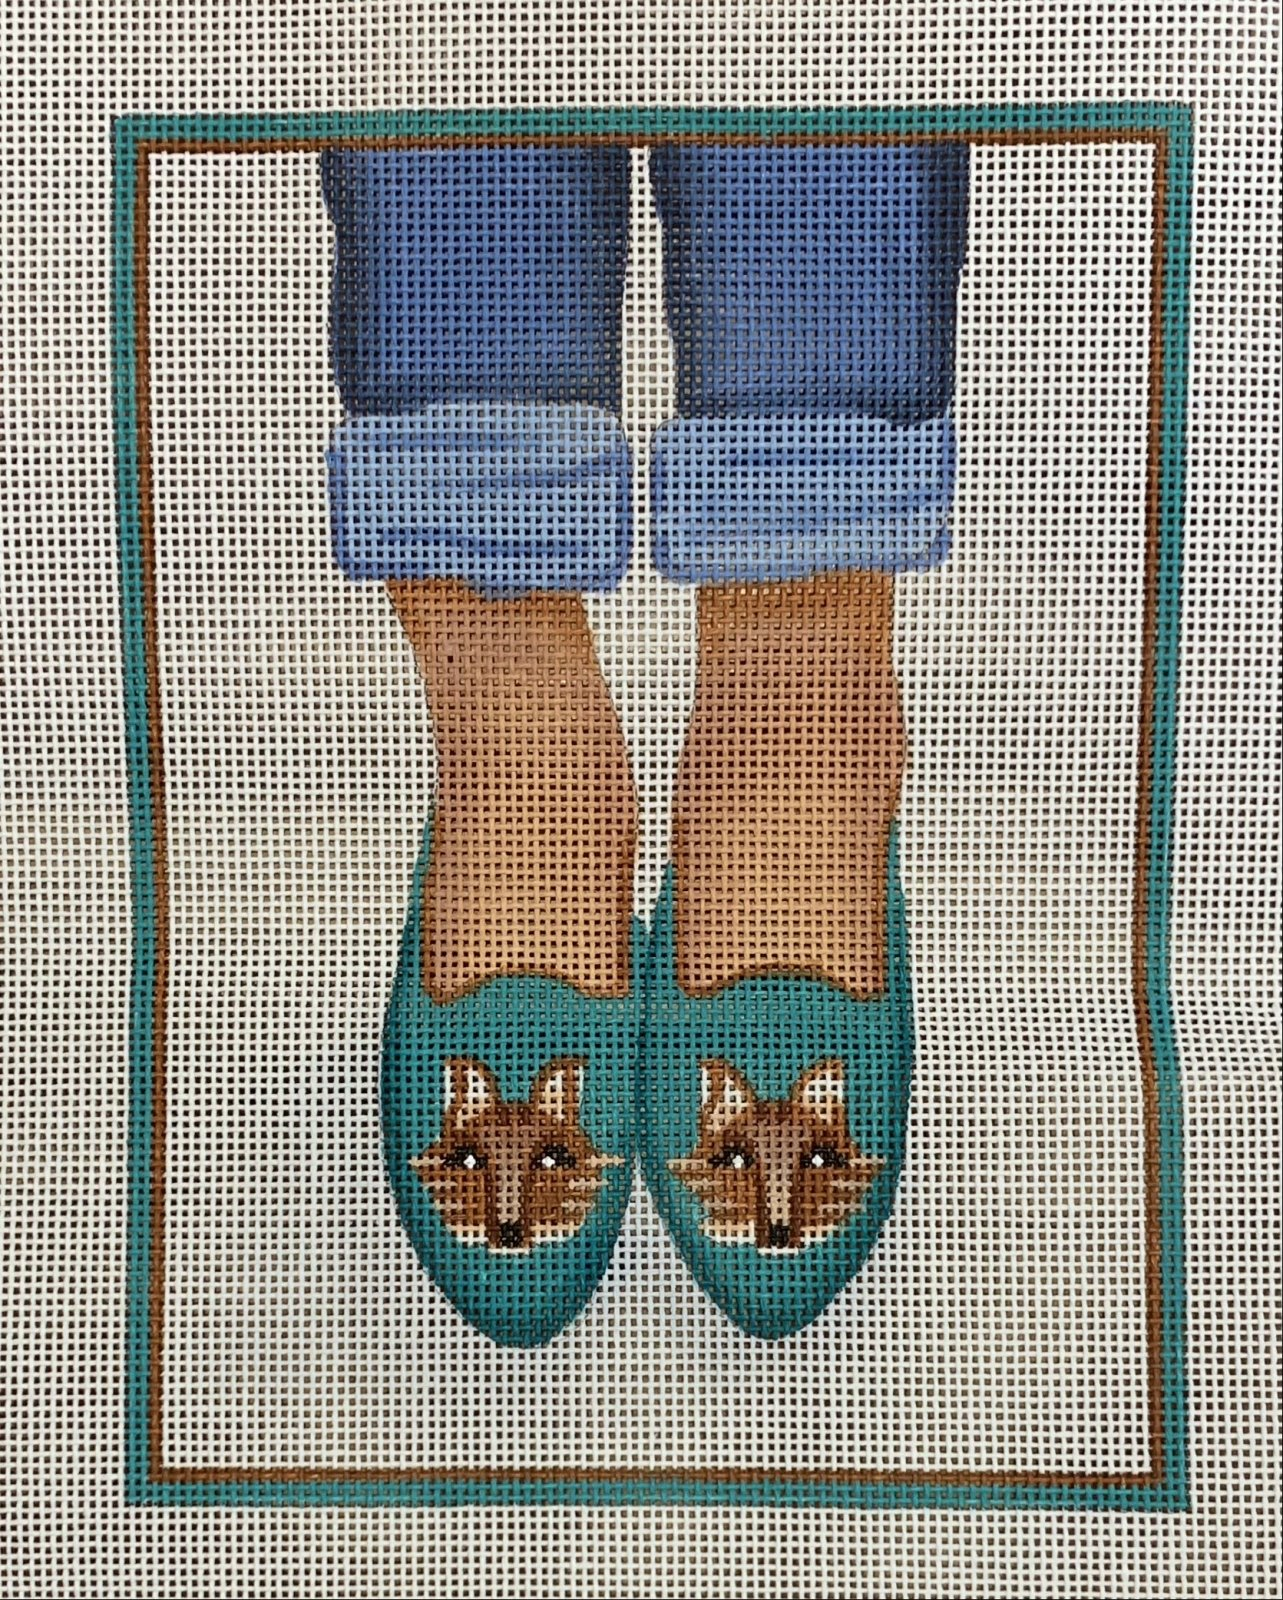 Here's Looking at Shoe - Needlepoint Fox Head Loafers (teal on tan)